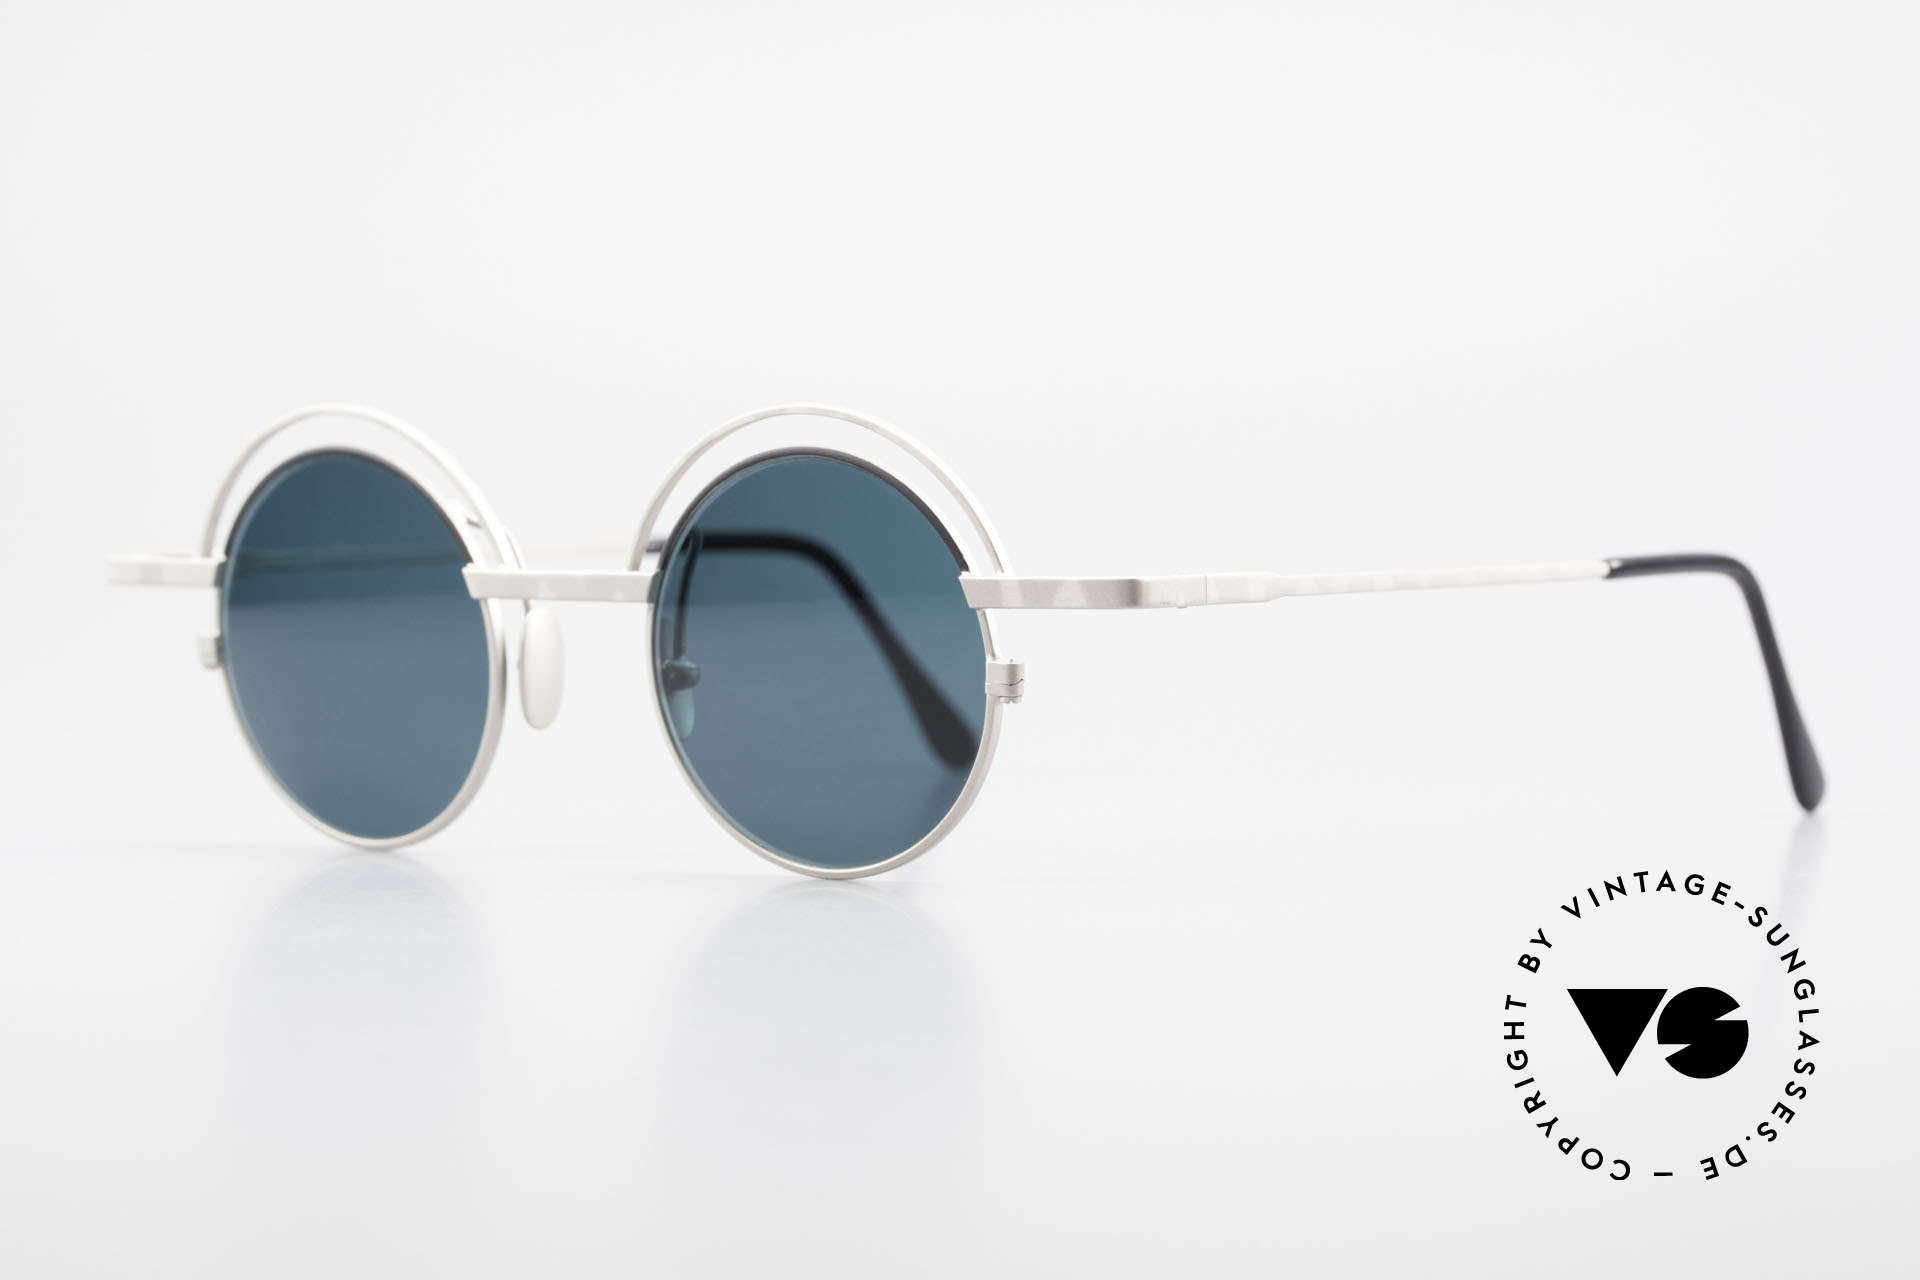 IMAGO Pluto Round Designer Sunglasses, multifaceted designs & craftsmanship 'made in Germany', Made for Men and Women